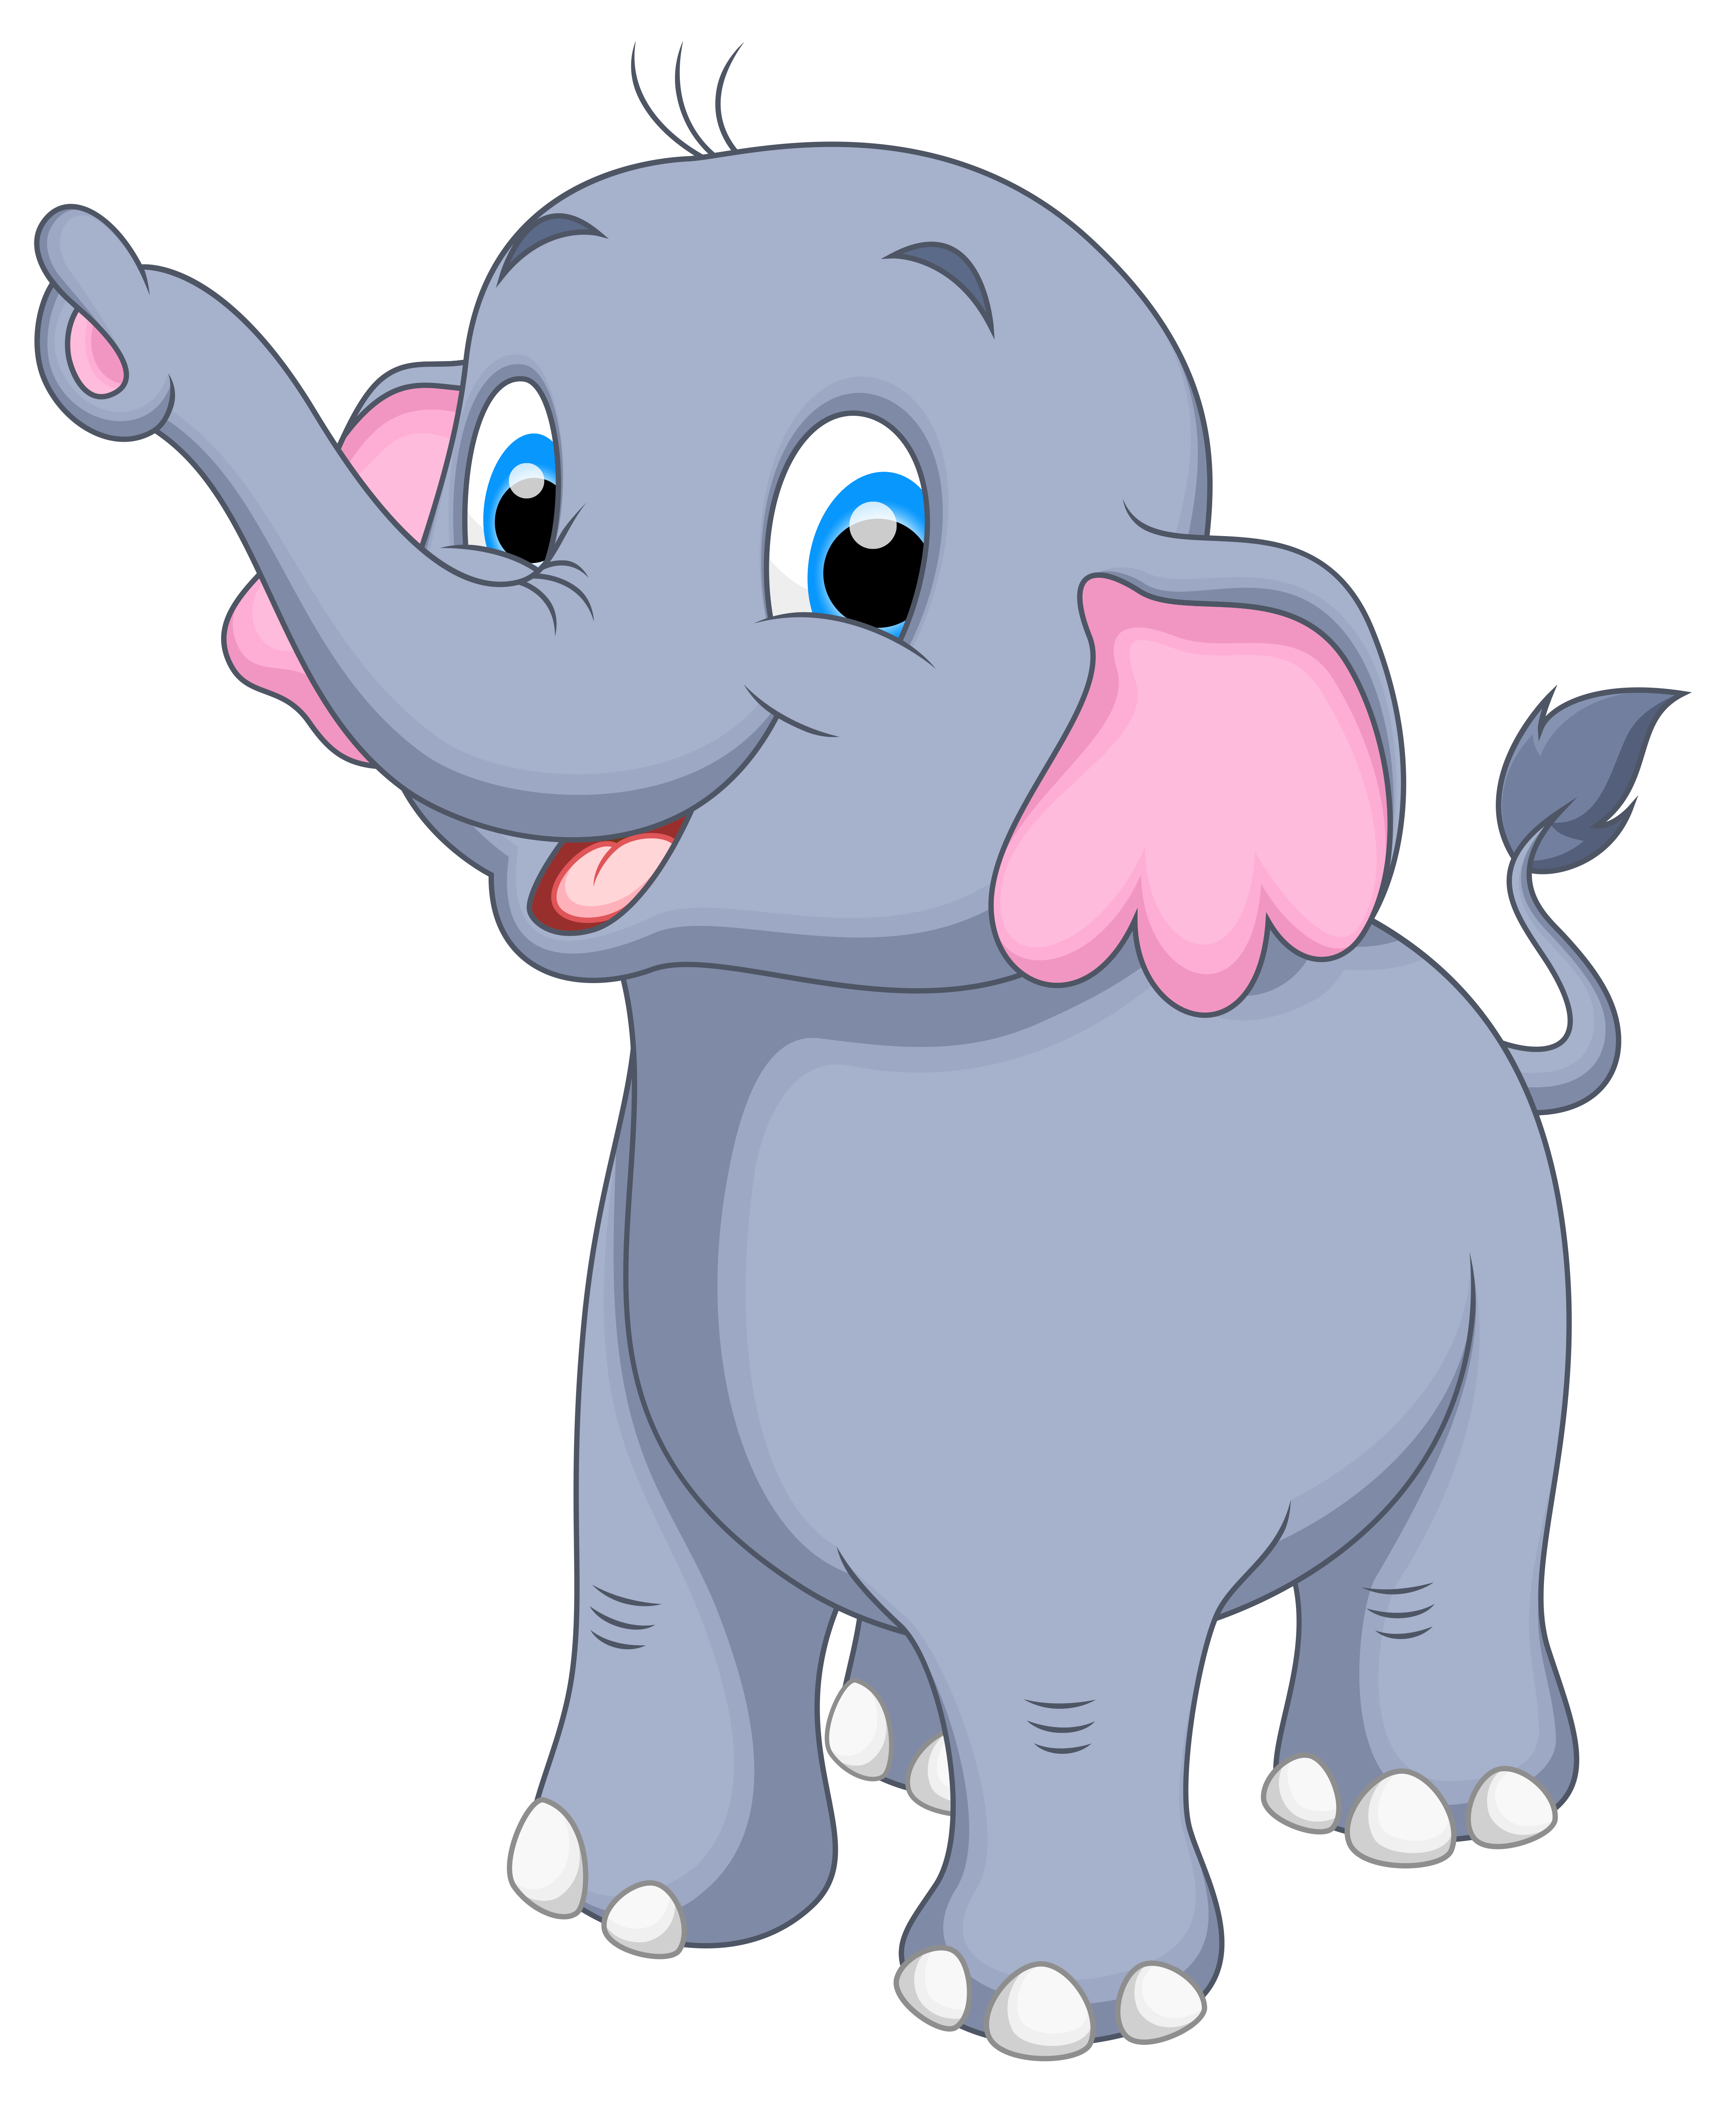 Baby with crown clipart image free Transparent jpeg elephant clipart - ClipartFest image free